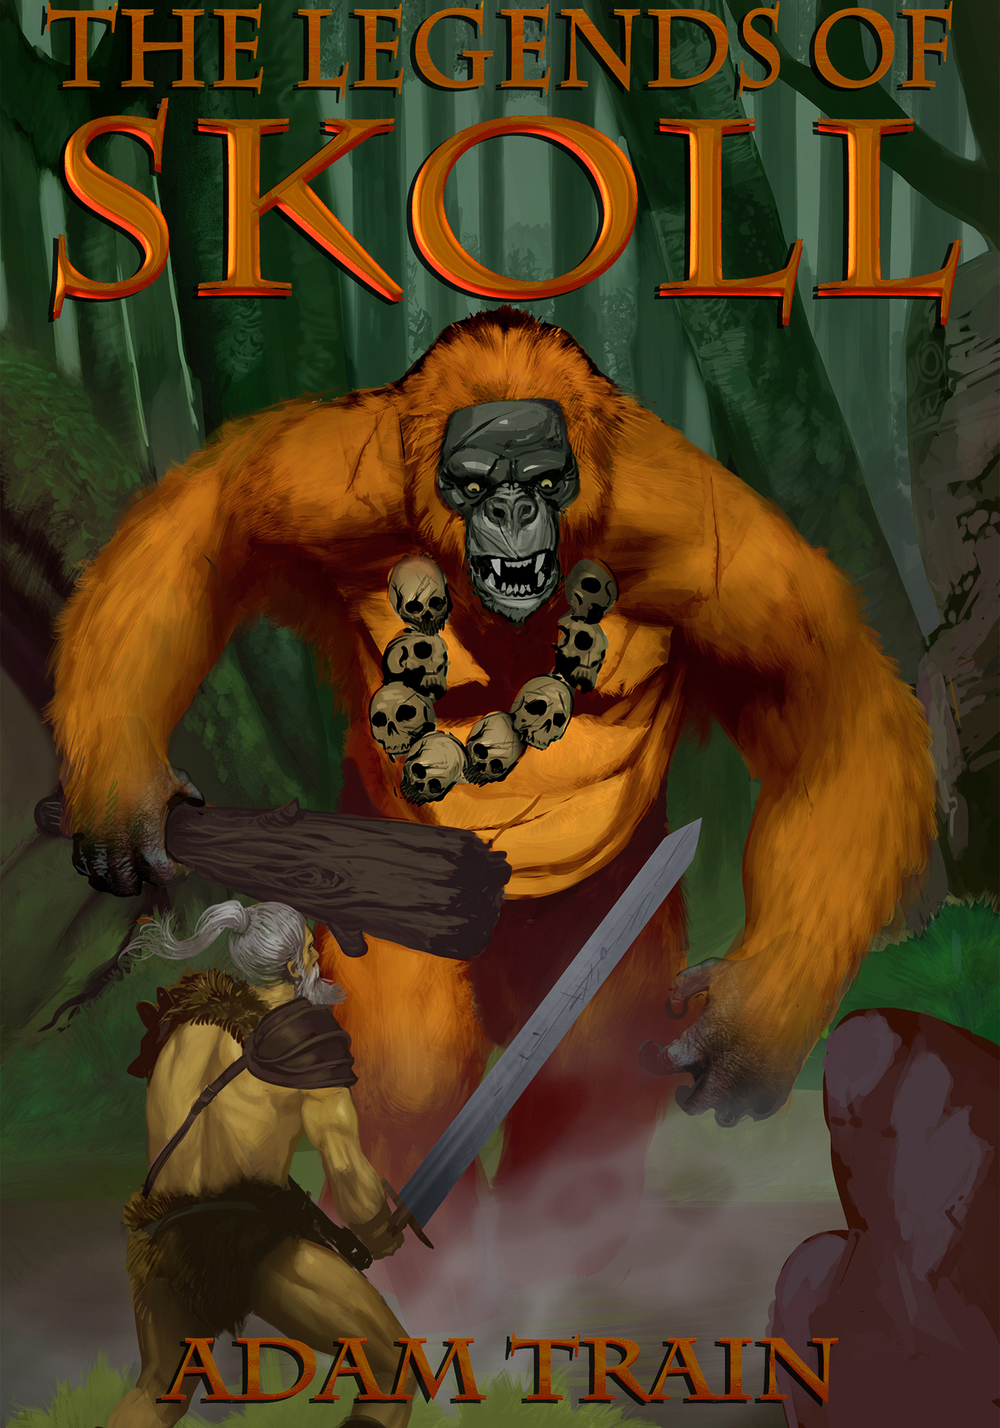 THE WILDMAN 'Blood for bounty, that is our affair' – Sköll Beset by a savage Wildman, a small Cathay village employs Sköll and Bhālū to slay the monster and liberate them from its clutches.